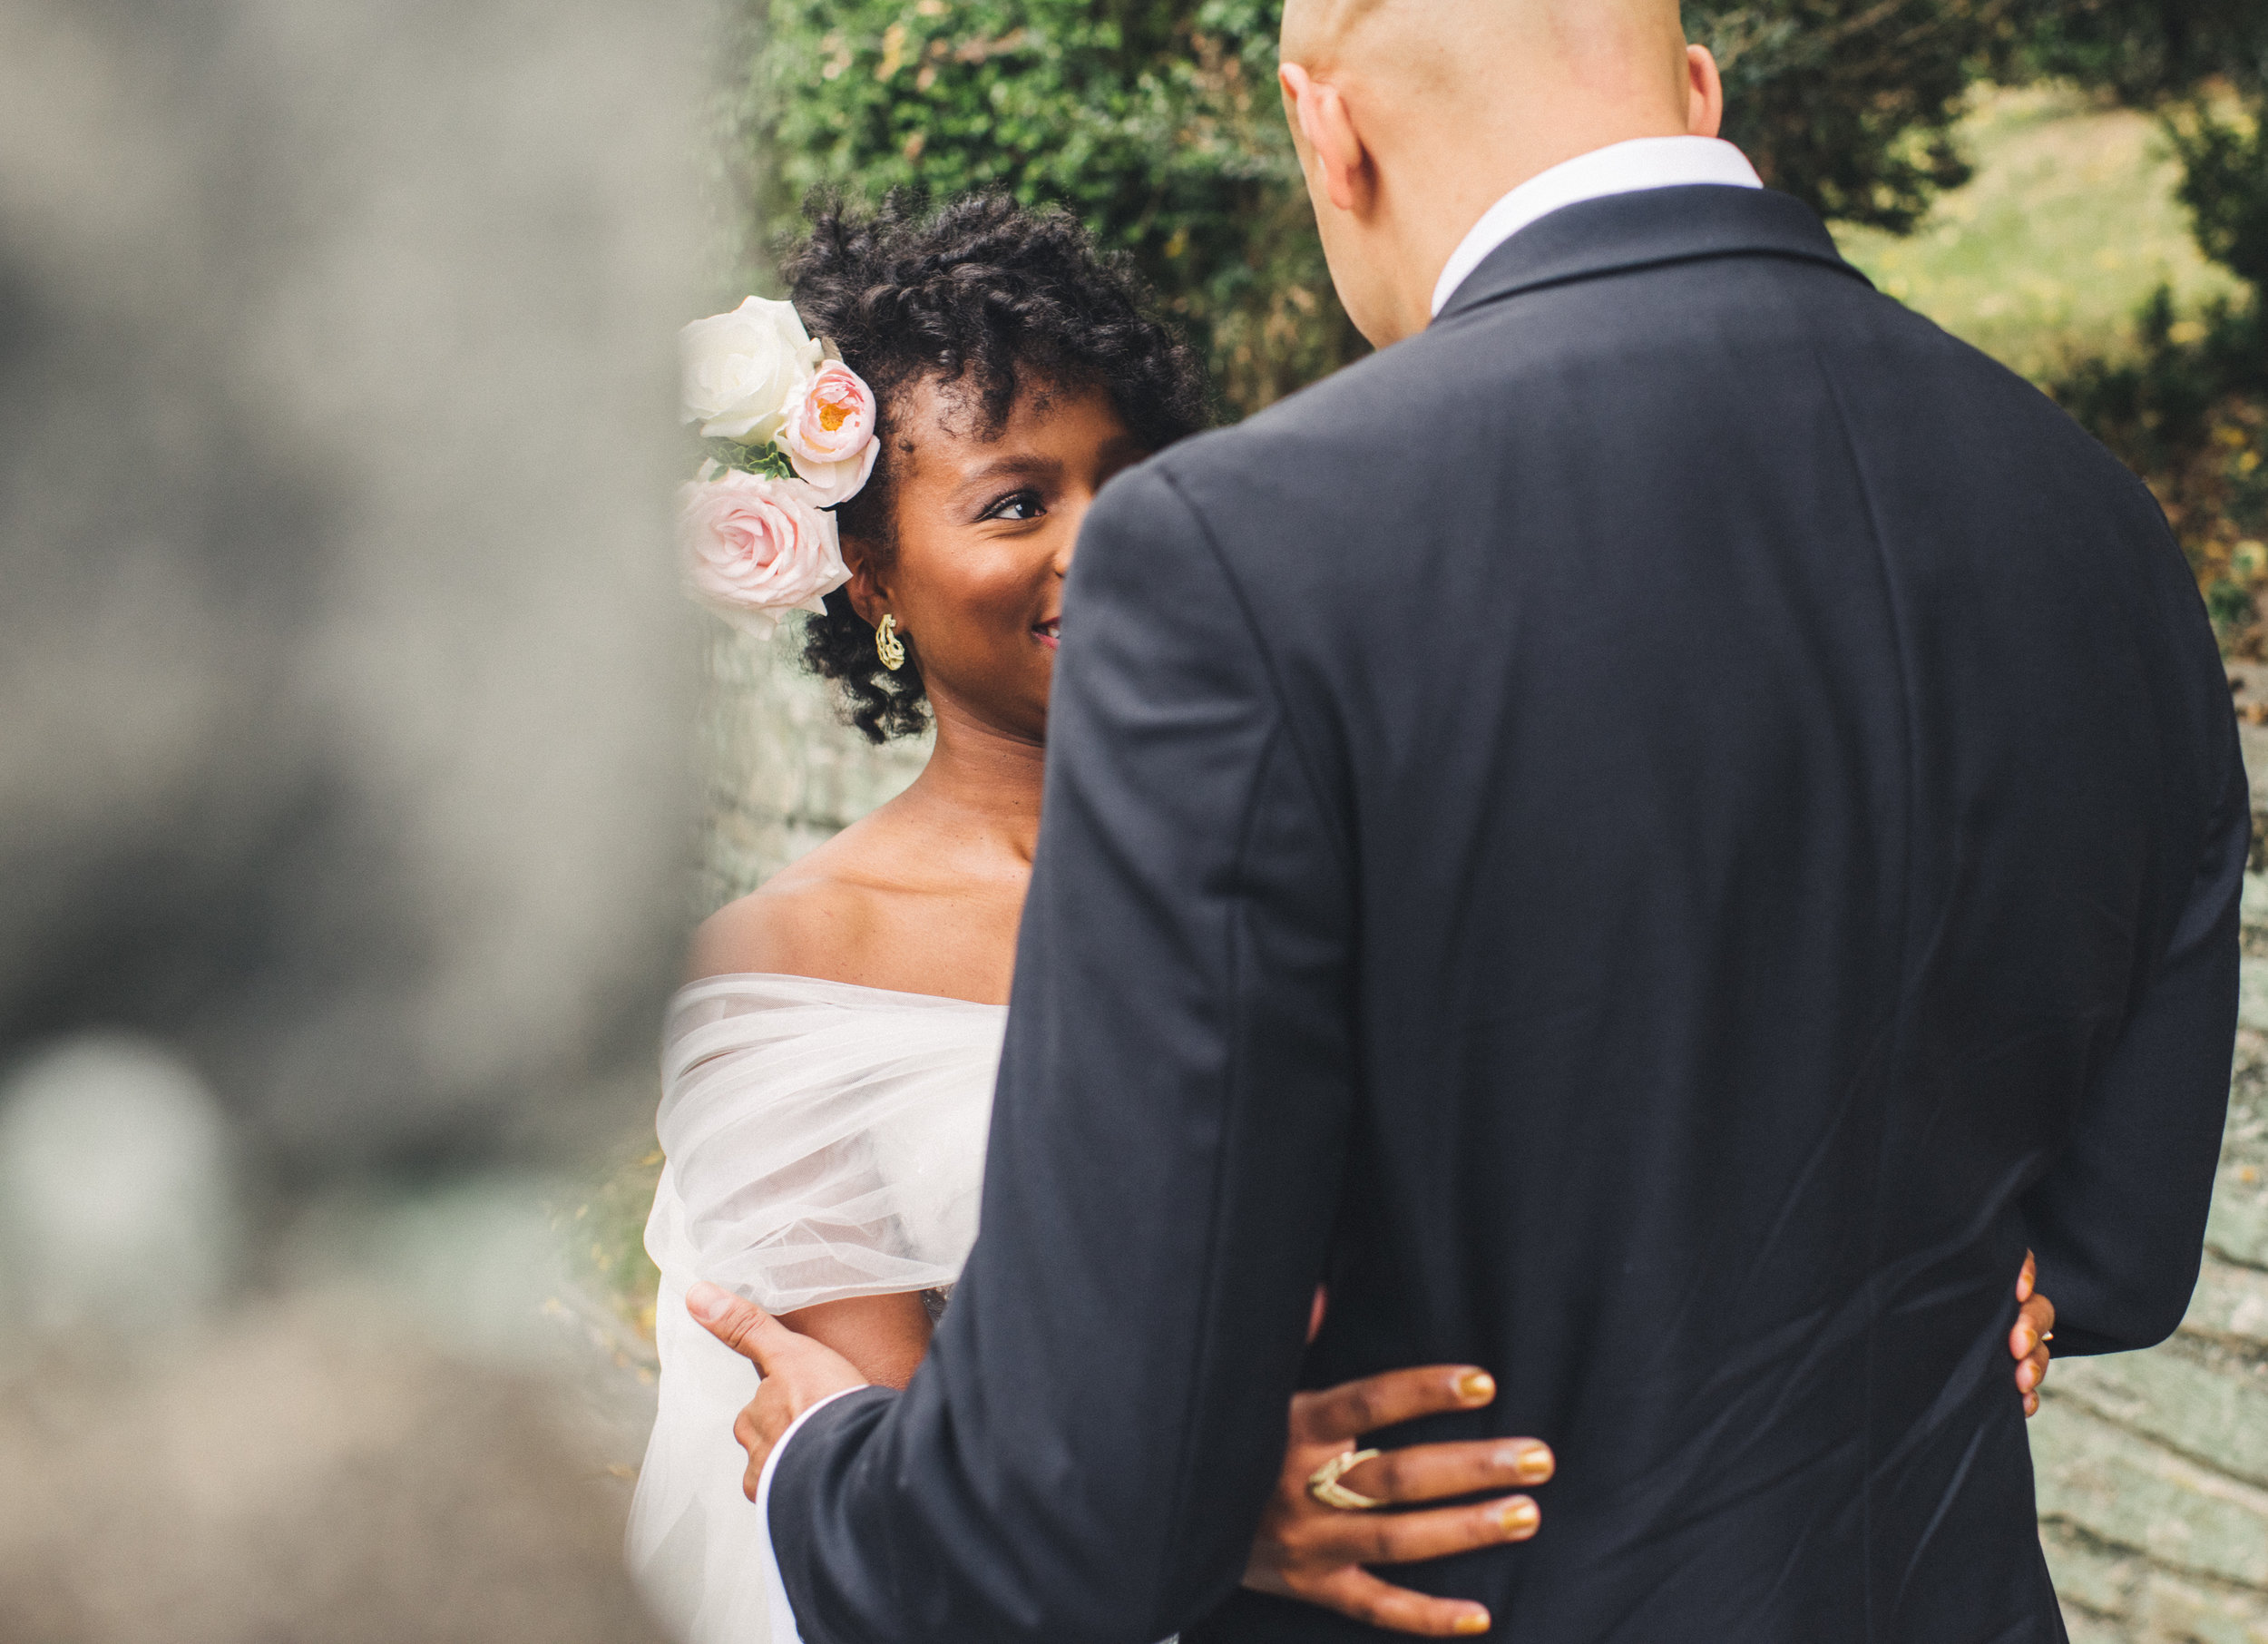 GLENVIEW MANSION WEDDING - INTIMATE WEDDING PHOTOGRAPHER - TWOTWENTY by CHI-CHI AGBIM-136.jpg